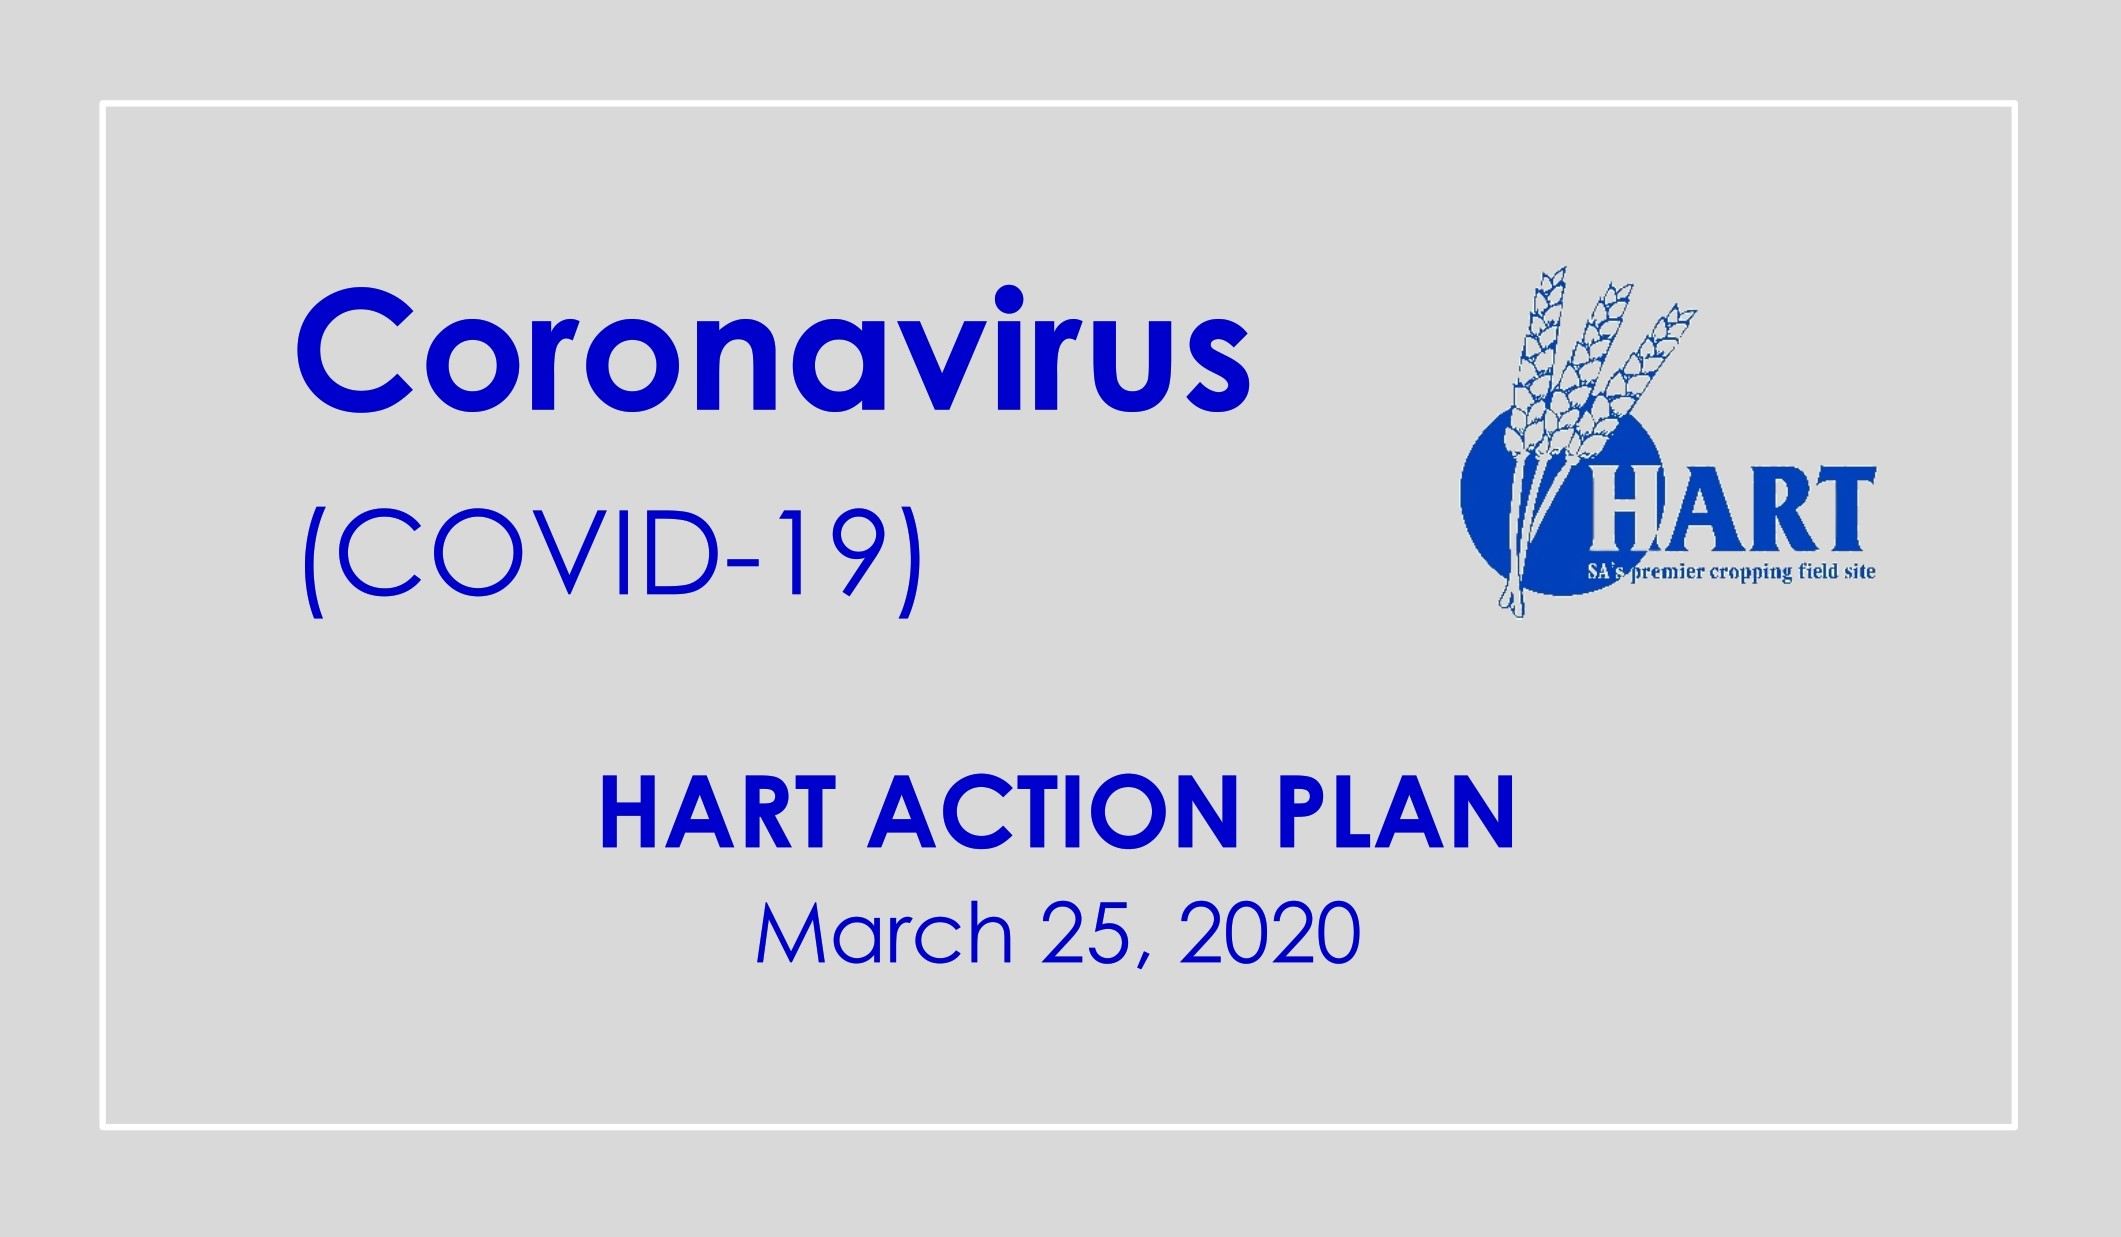 Hart COVID-19 Action Plan | March 25, 2020